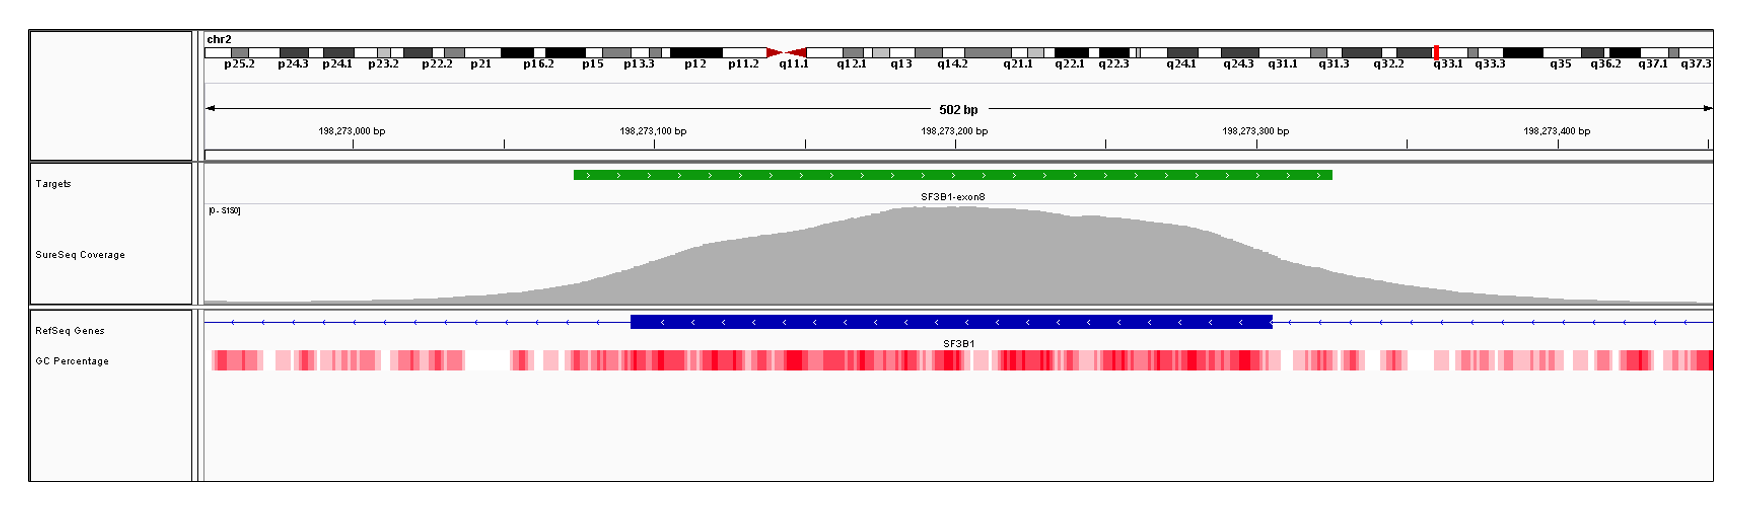 SF3B1 Exon 8 (hg19 chr2:198273093-198273305). Depth of coverage per base (grey). Targeted region (green). Gene coding region as defined by RefSeq (blue). GC percentage (red). Image